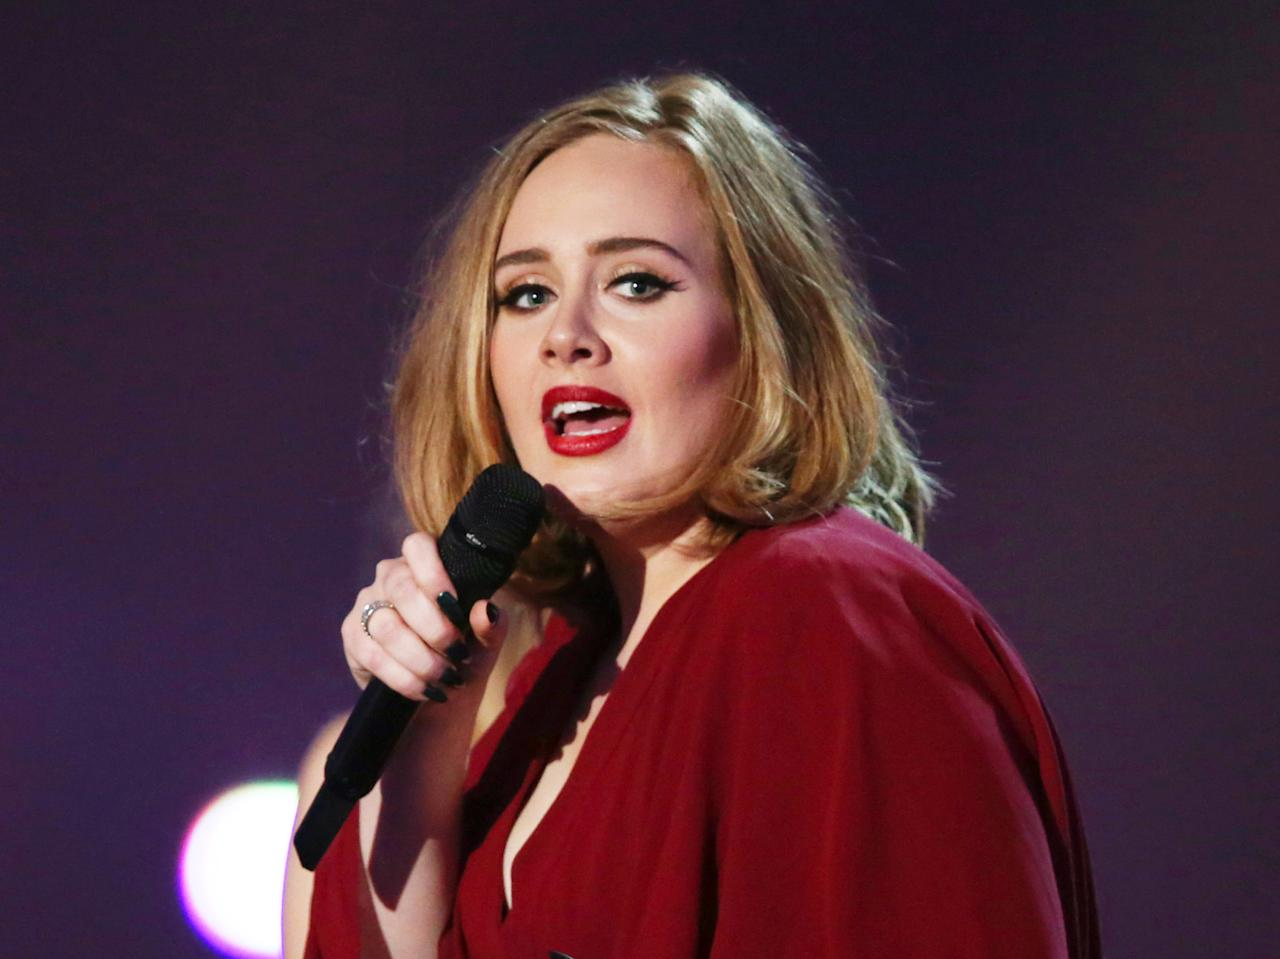 """FILE - In this Feb. 24, 2016 file photo shows Adele onstage at the Brit Awards 2016 at the 02 Arena in London. Adele and Beyonce are the top nominees at the MTV Video Music Awards, where their music videos will compete against Kanye West's controversial """"Famous"""" for video of the year. The VMAs will air live Aug. 28 from New York's Madison Square Garden. (Photo by Joel Ryan/Invision/AP, File)"""